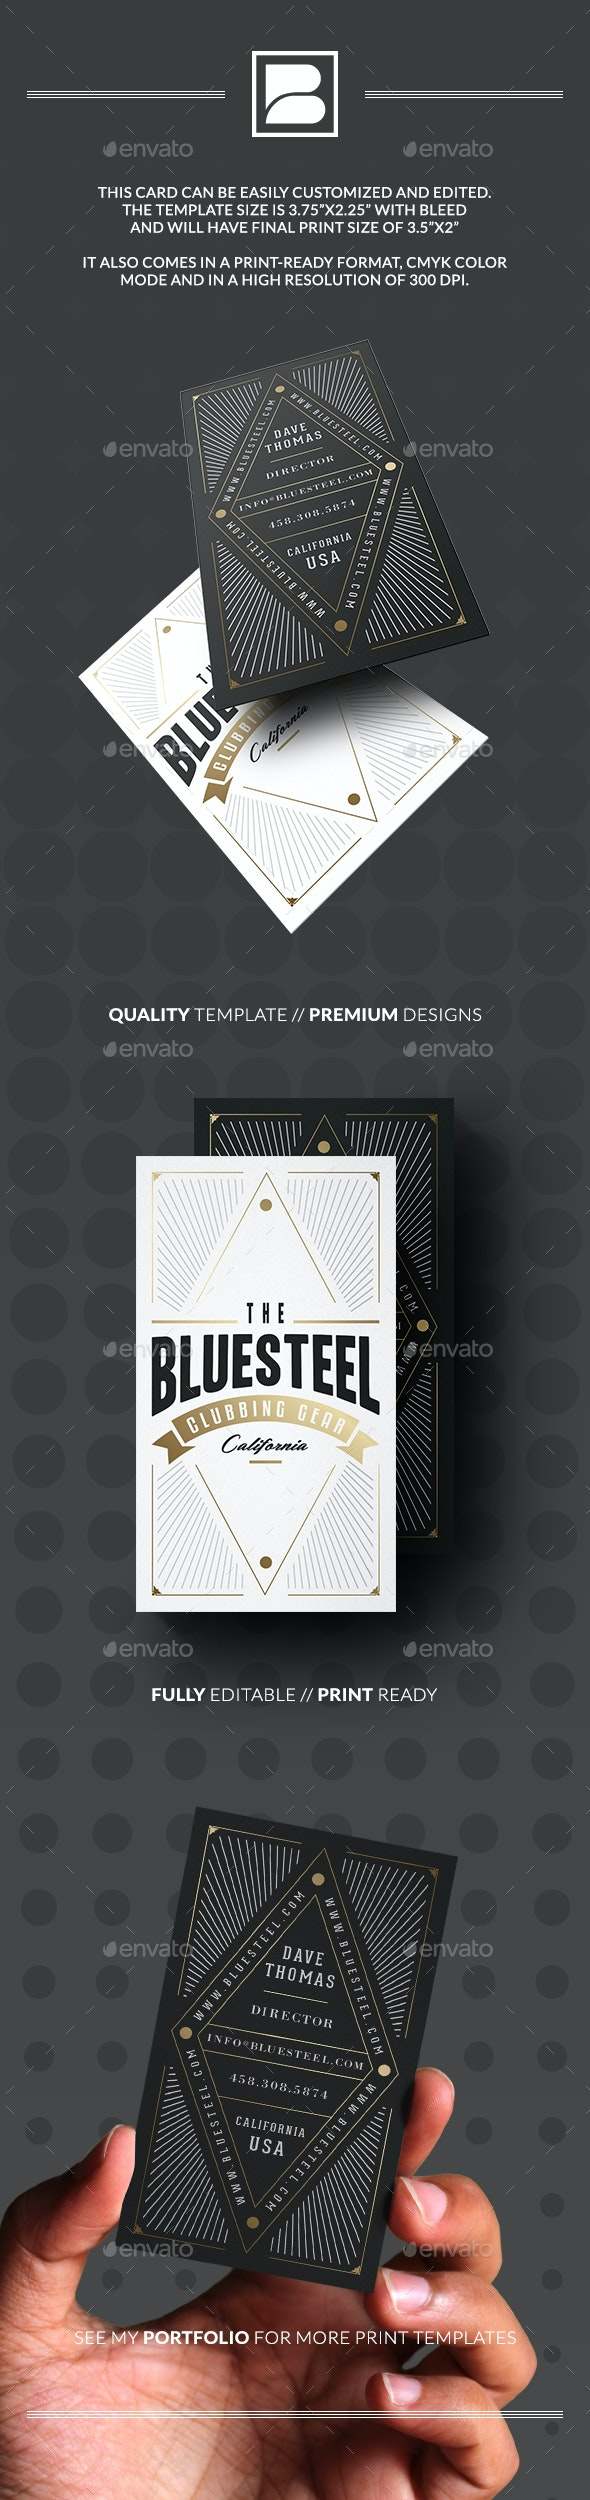 Retro Typography Business Card - Retro/Vintage Business Cards